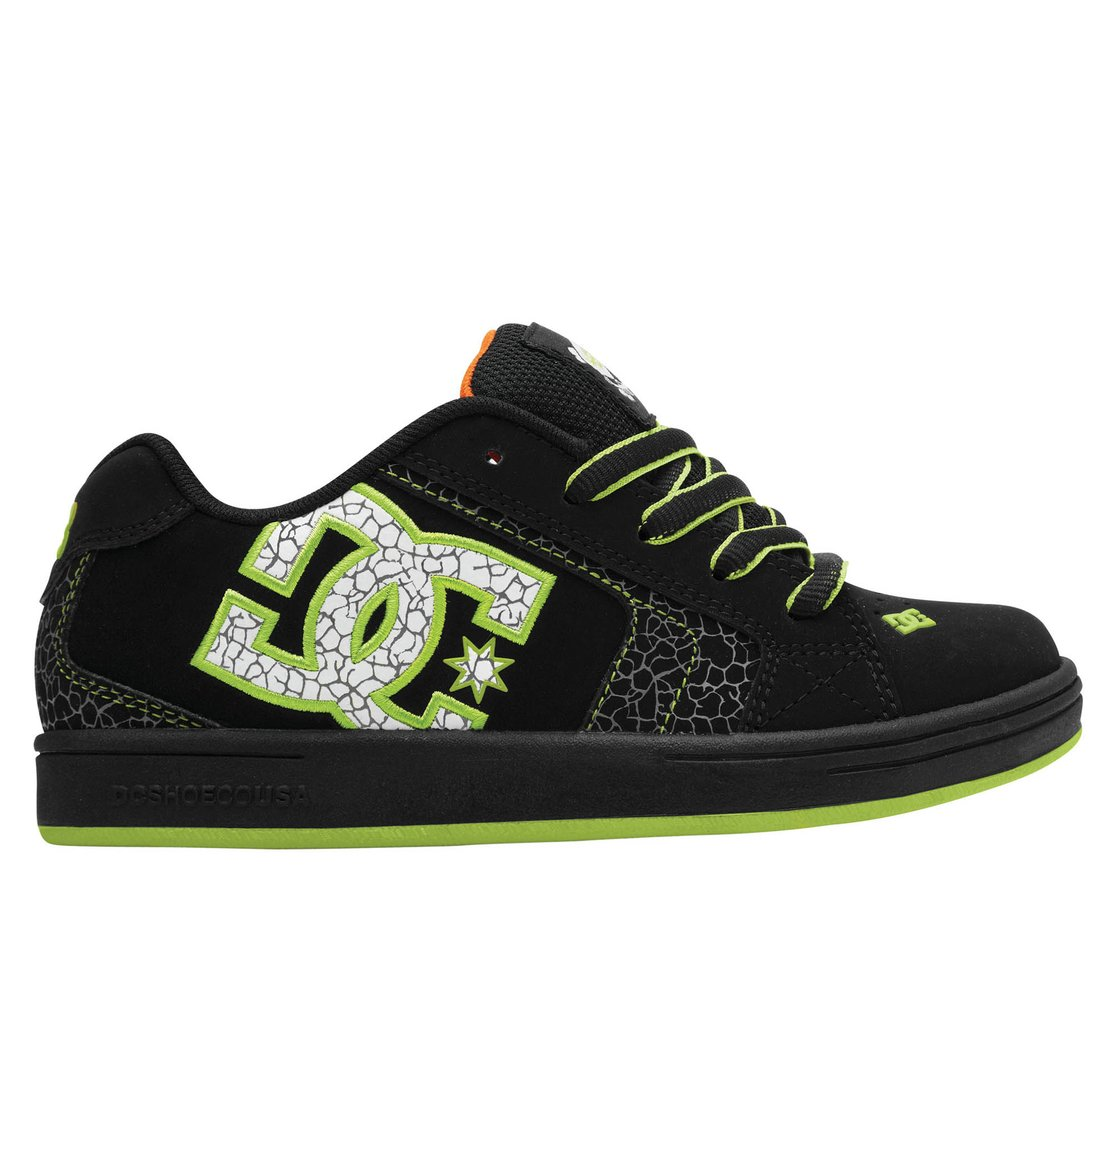 Boys Ken Block Net Shoes 320301B